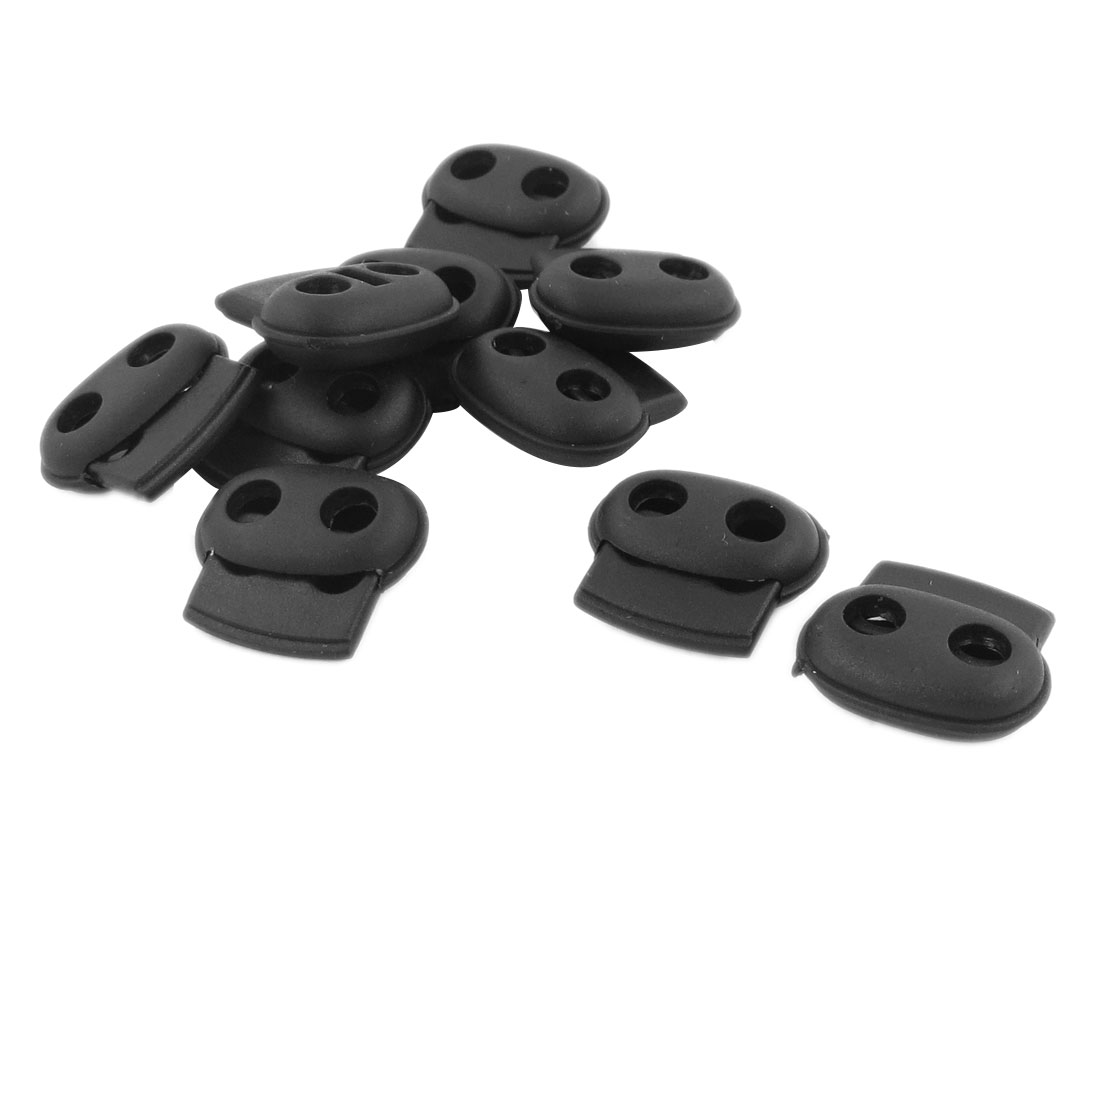 10 Pcs 5.3mm Dia Double Holes Rope Cord Locks Ends Drawstring Toggles Black